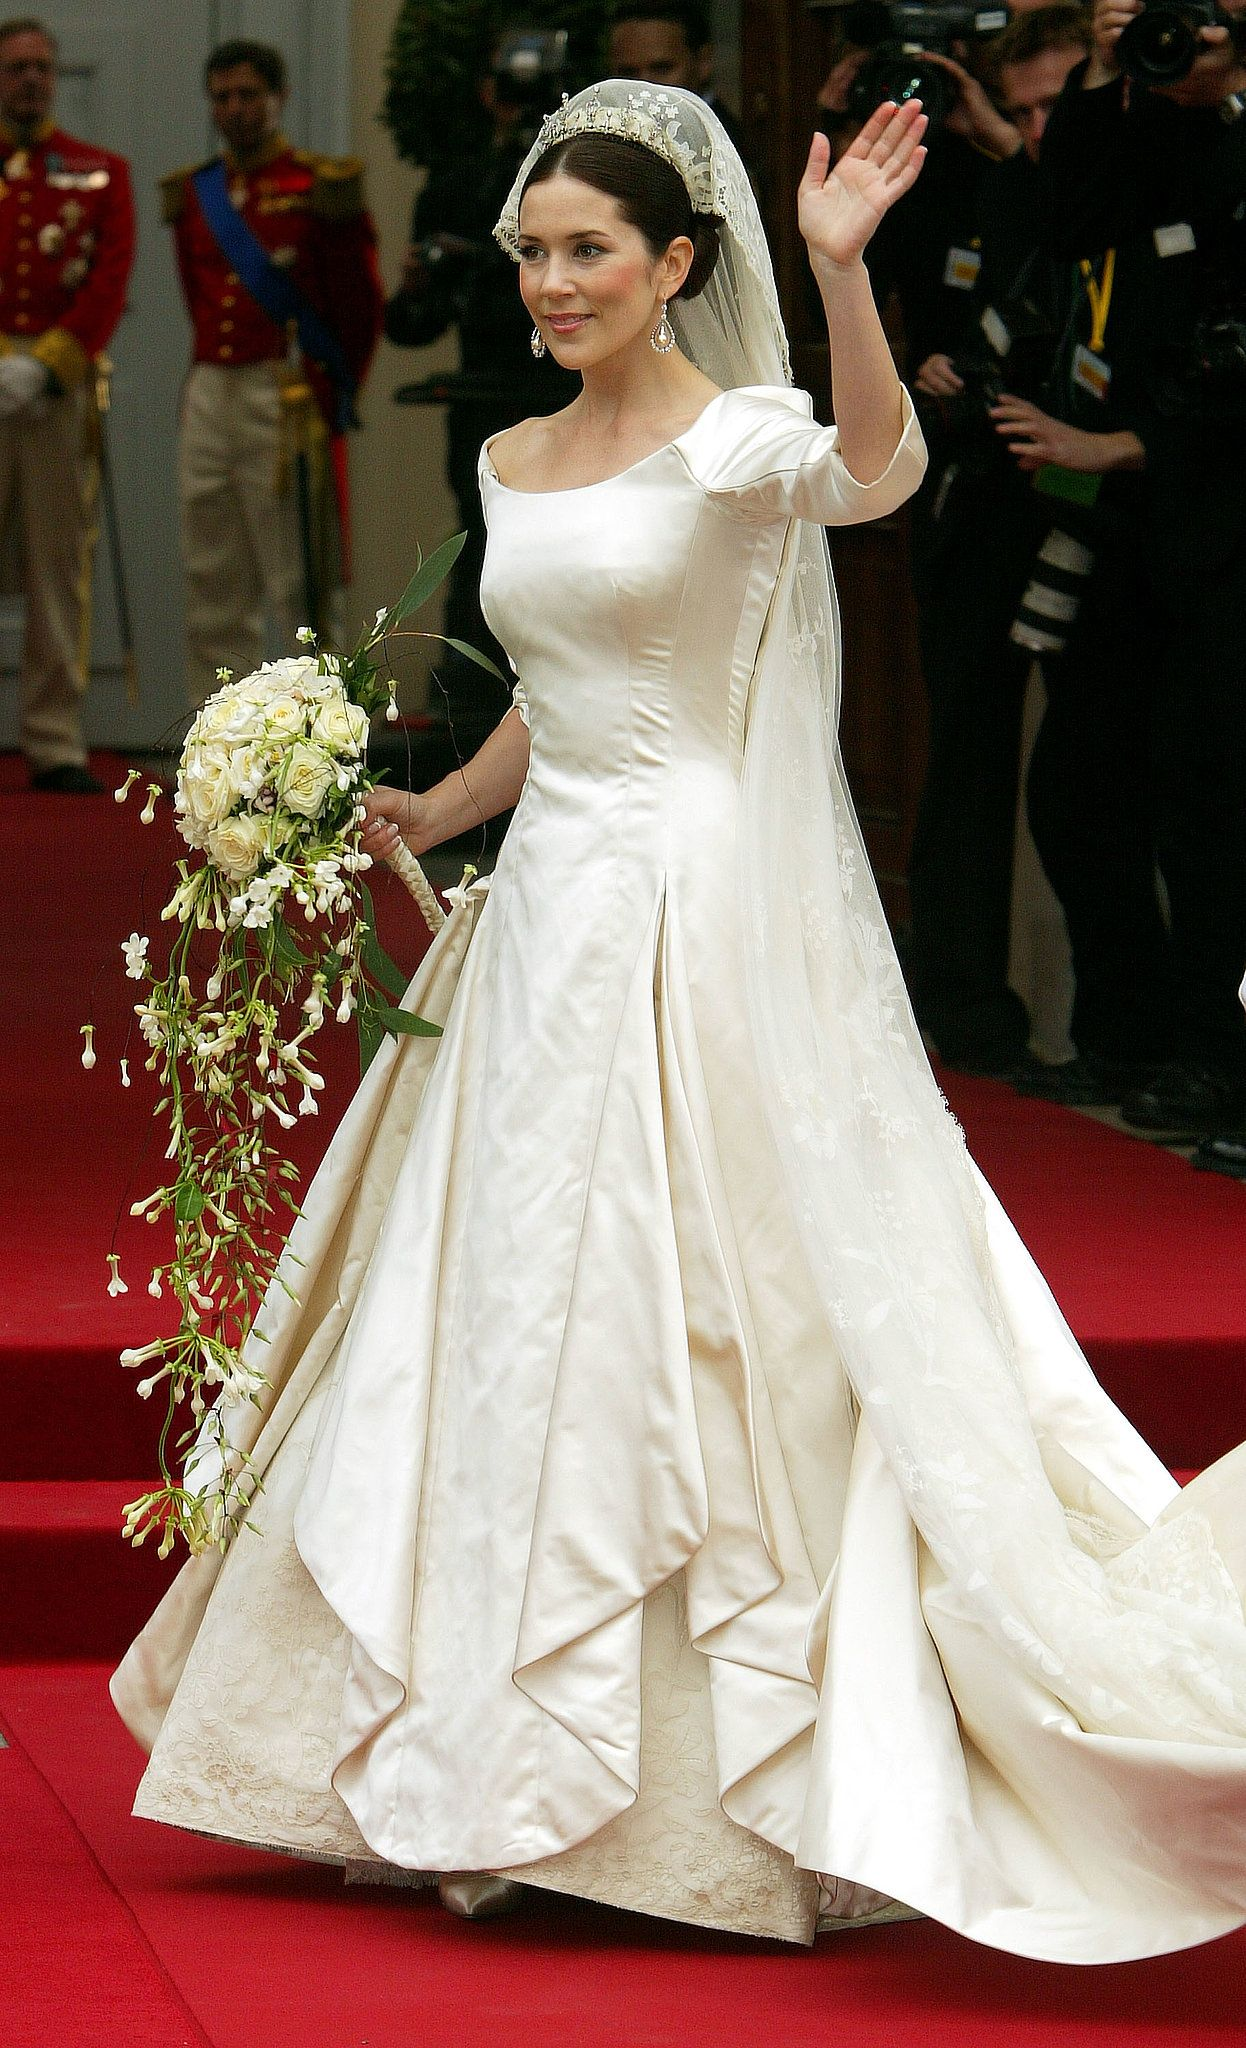 Celebrity Gossip News The Most Stunning Royal Weddings From Around The World Royal Wedding Gowns Royal Brides Royal Wedding Dress [ 2048 x 1246 Pixel ]